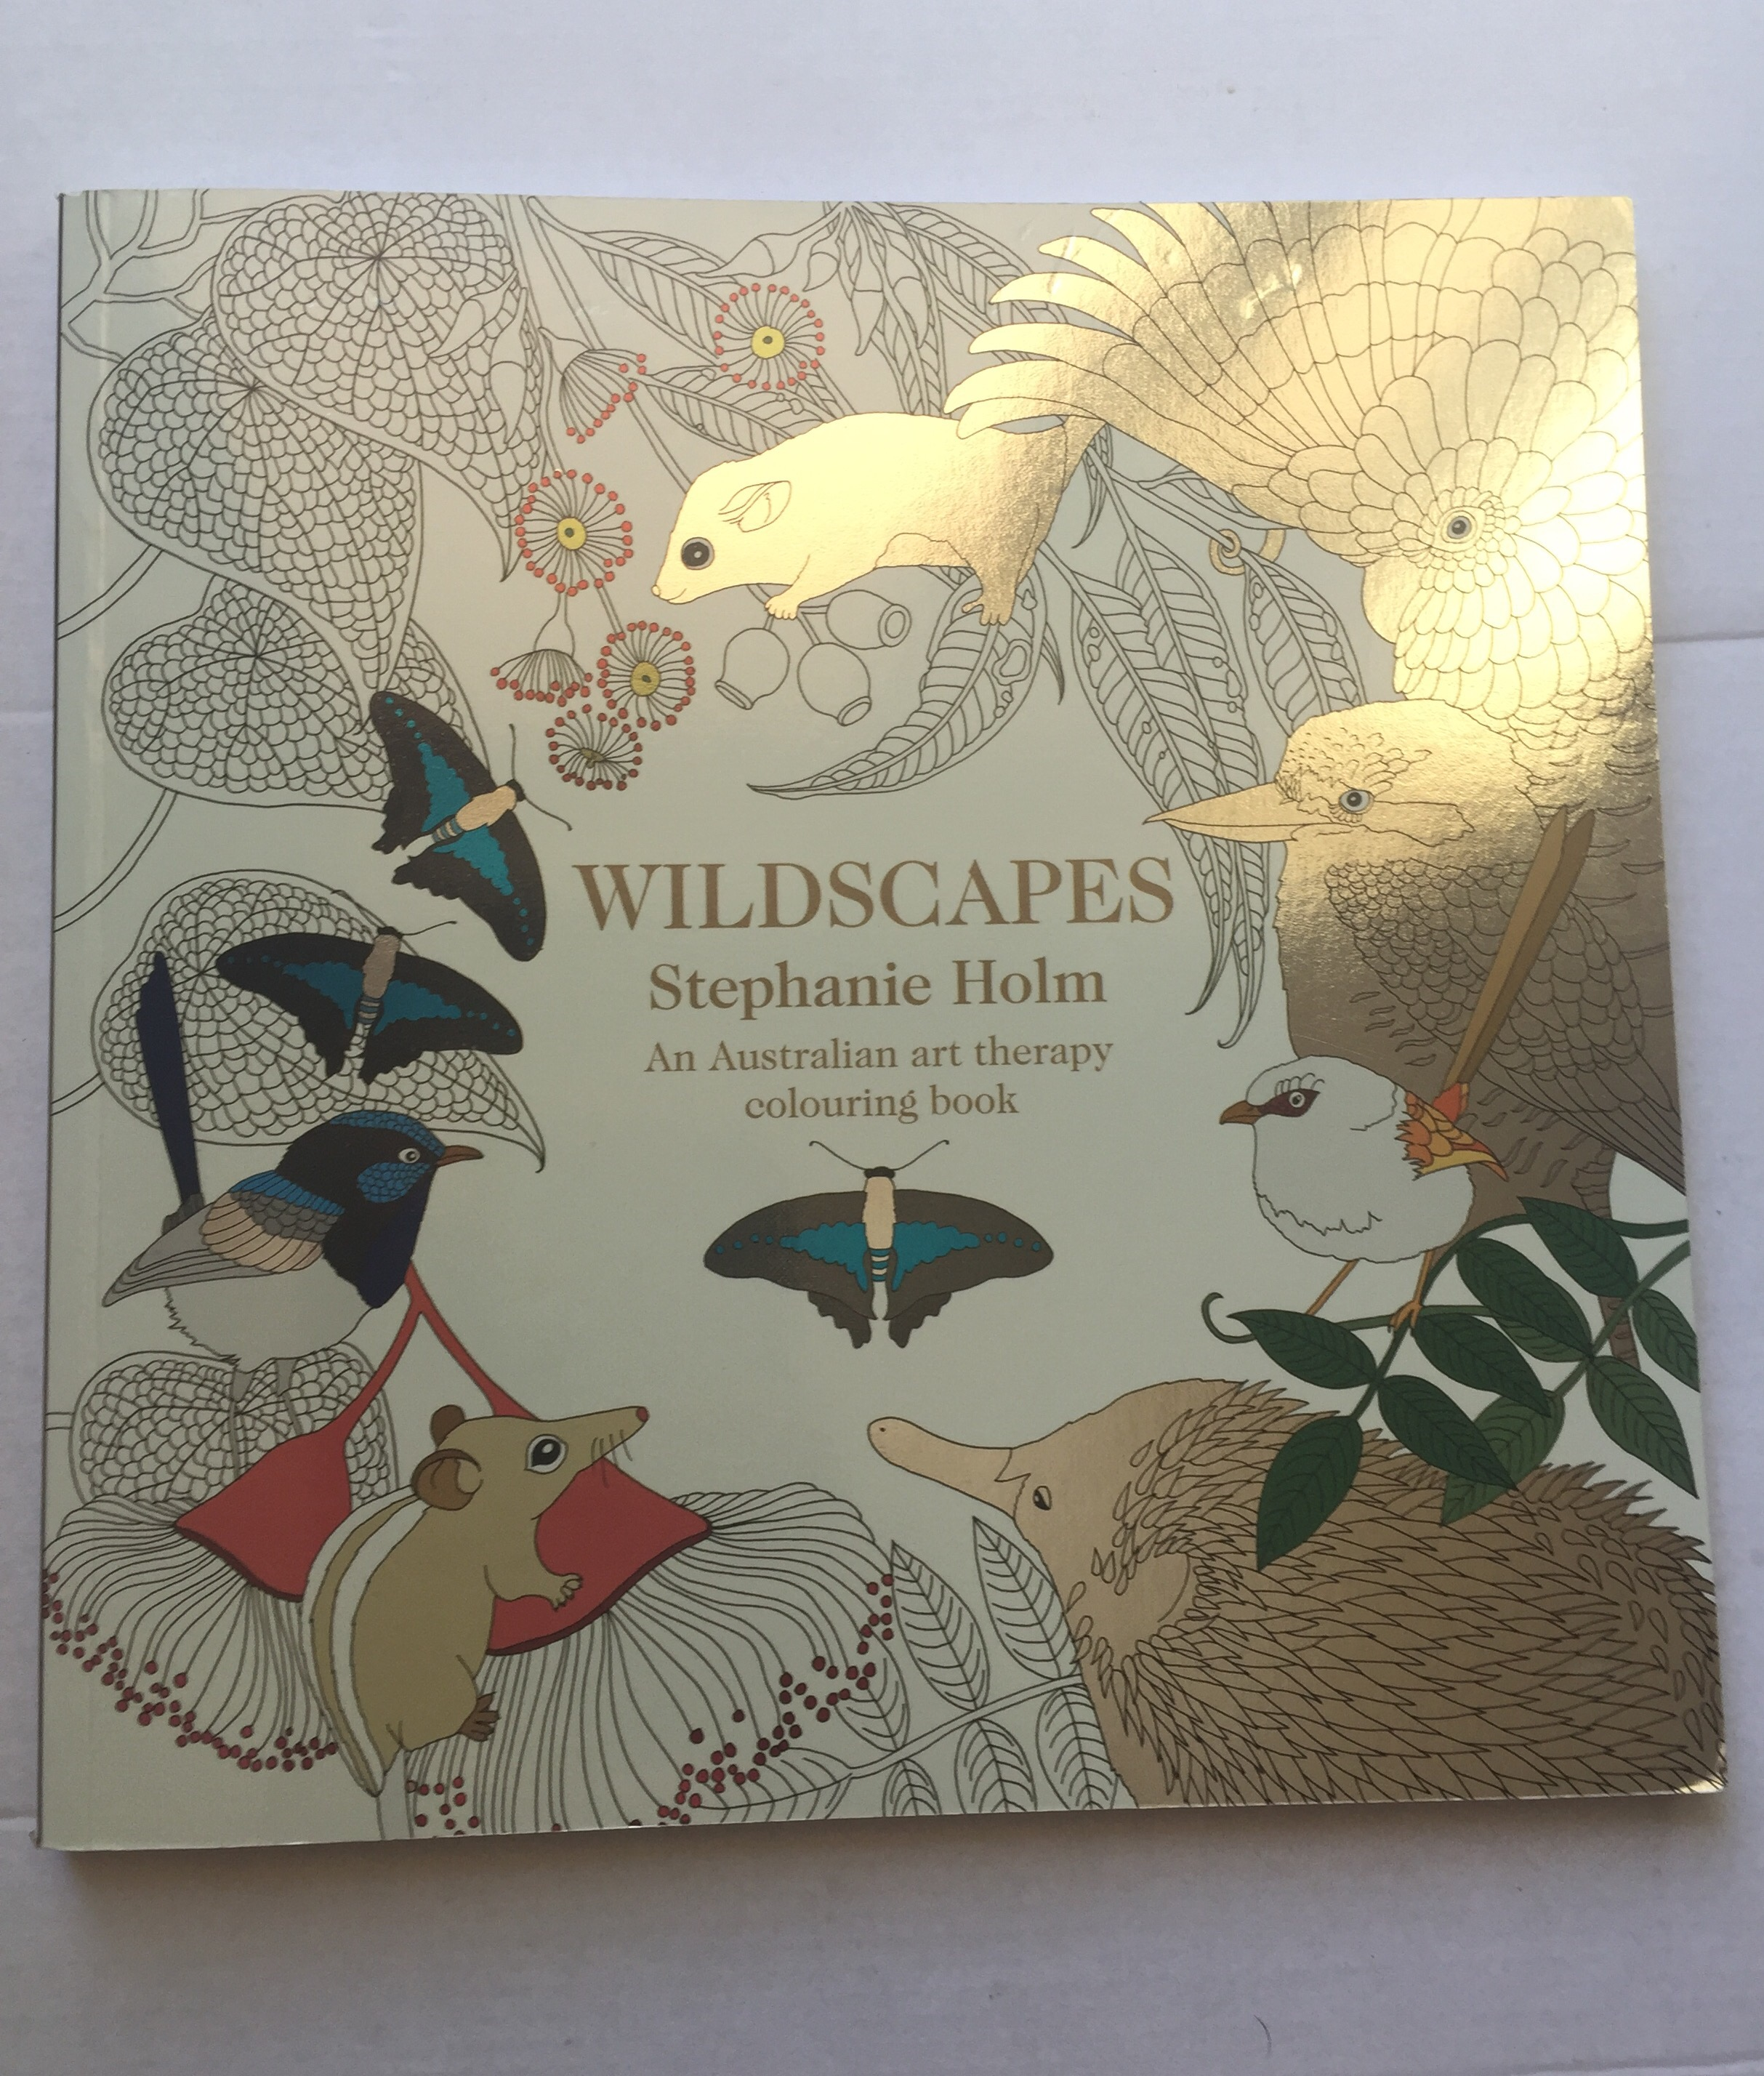 Wildscapes Art Therapy Colouring Coloring In Pencils Animal Australian Australia Stephanie Holm Stress Mindfulness Cover Book